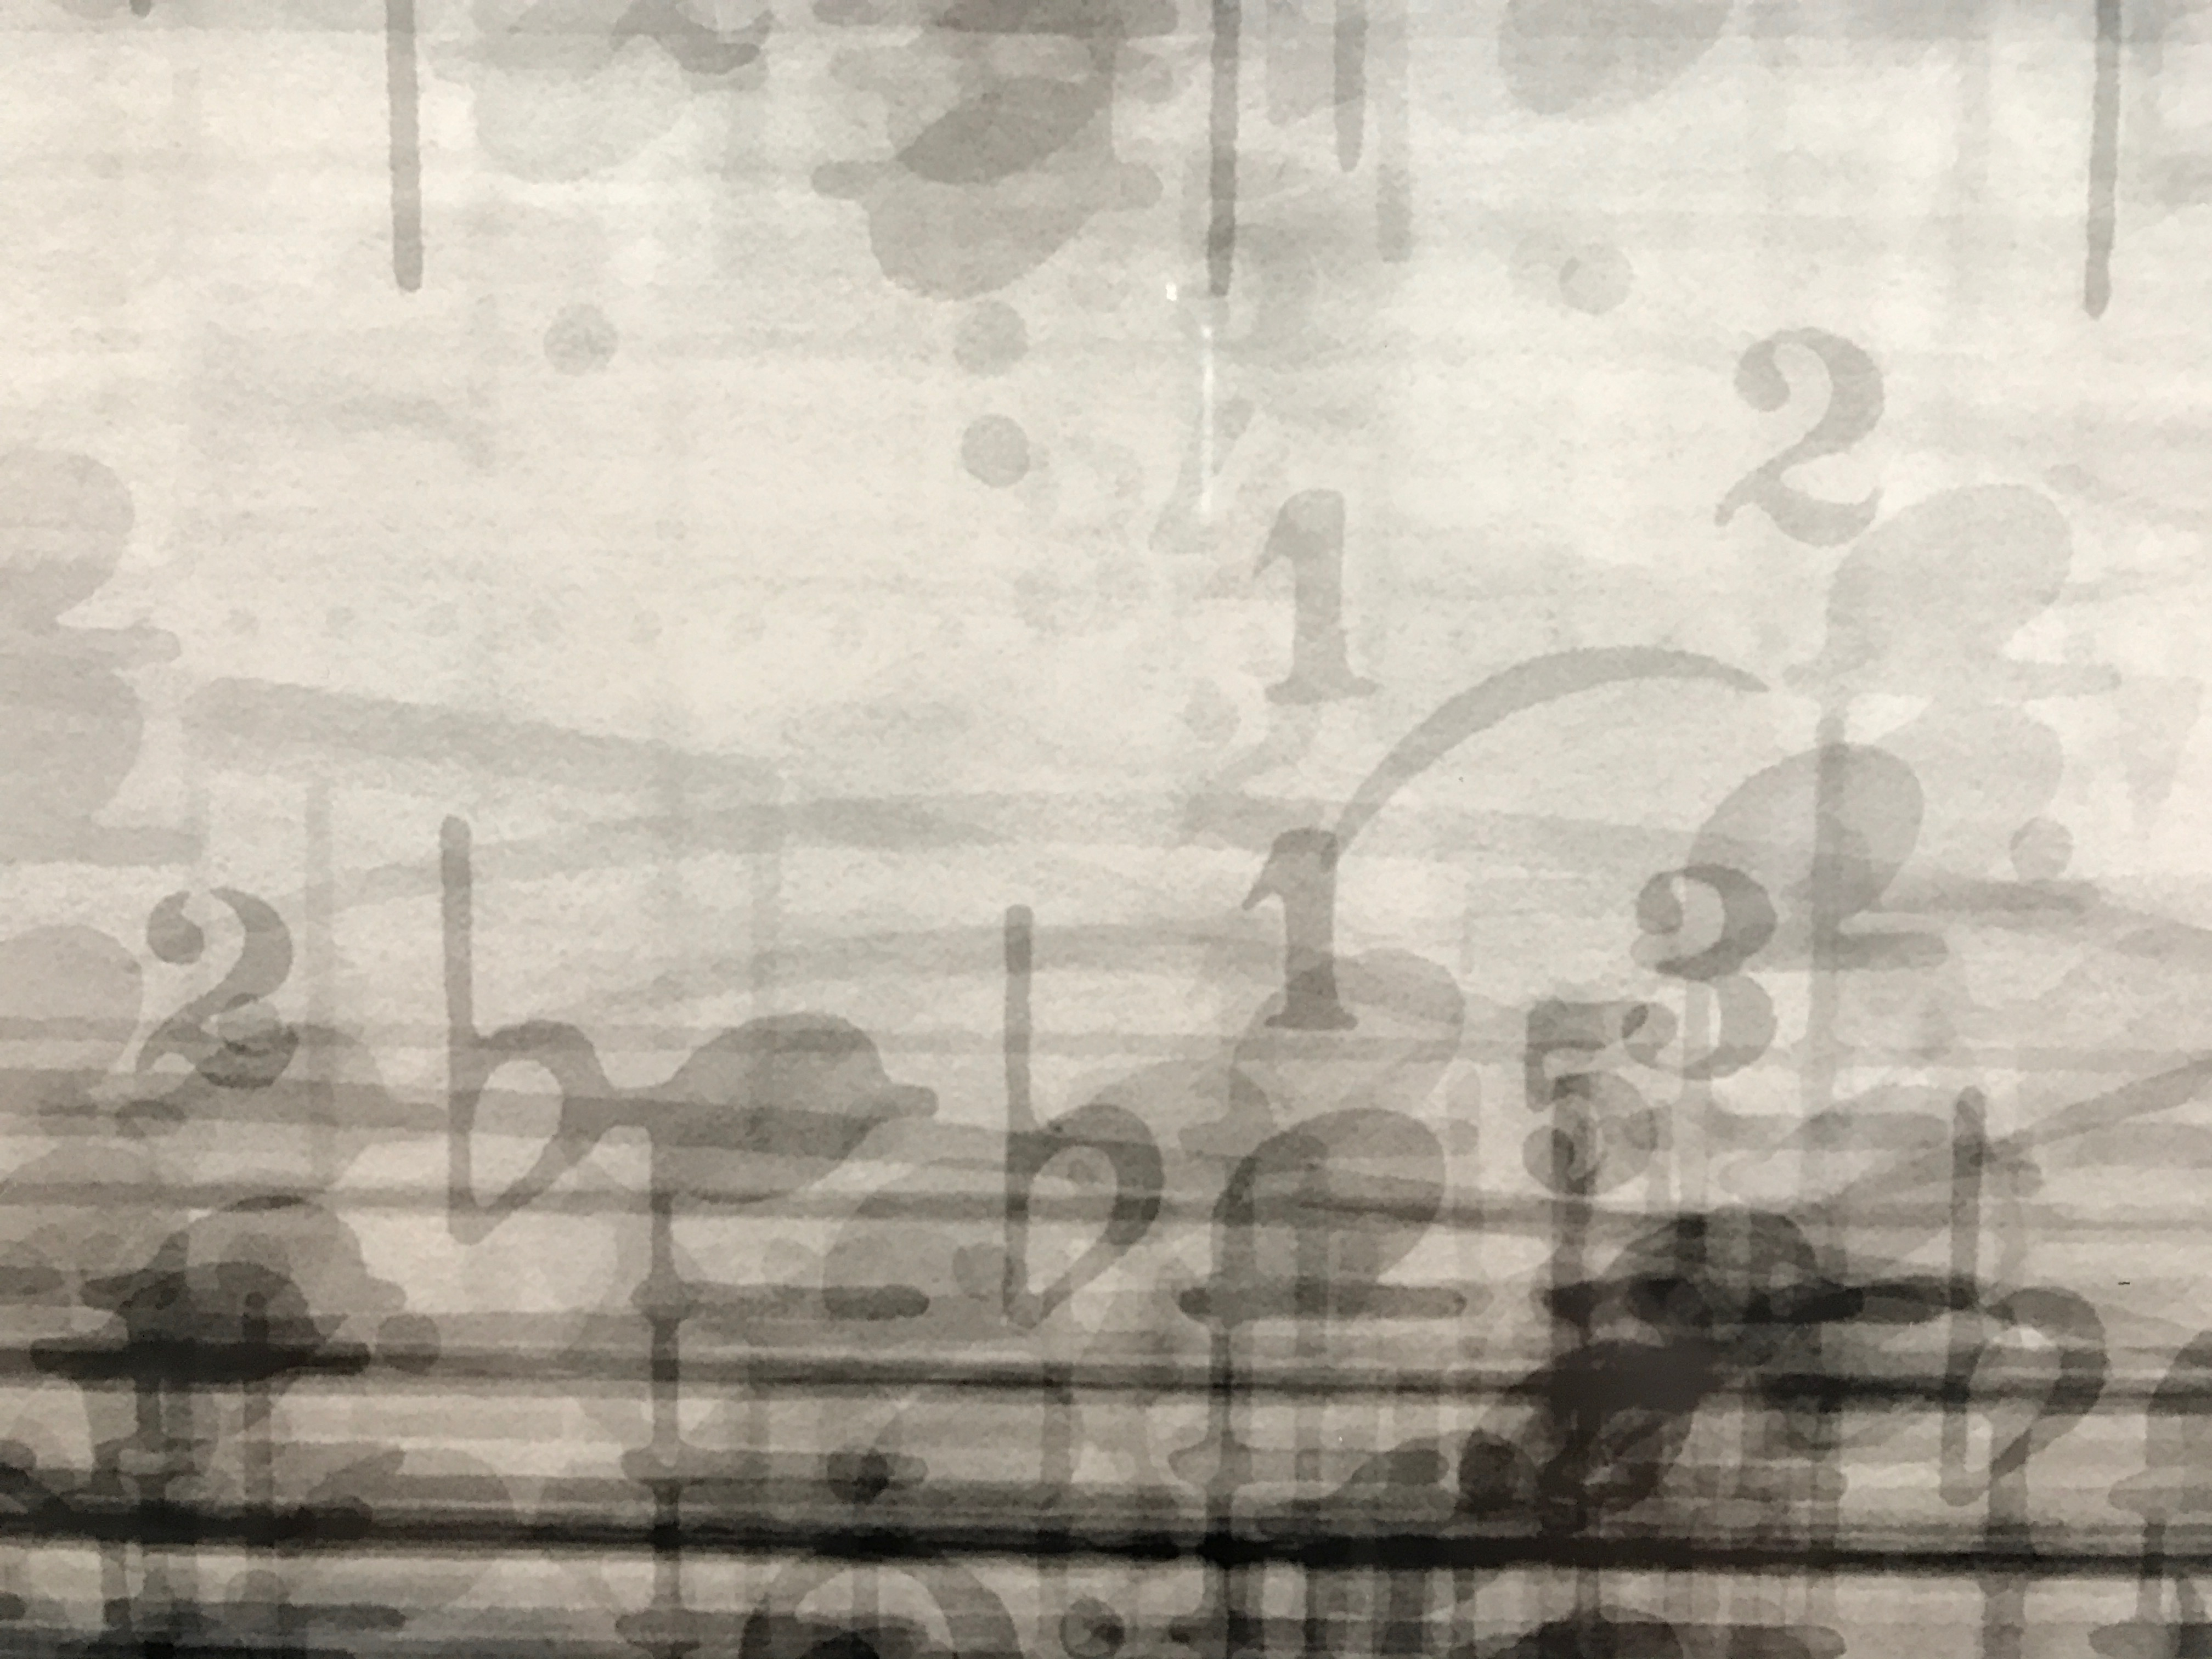 Idris Khan and the Poetics of the Score